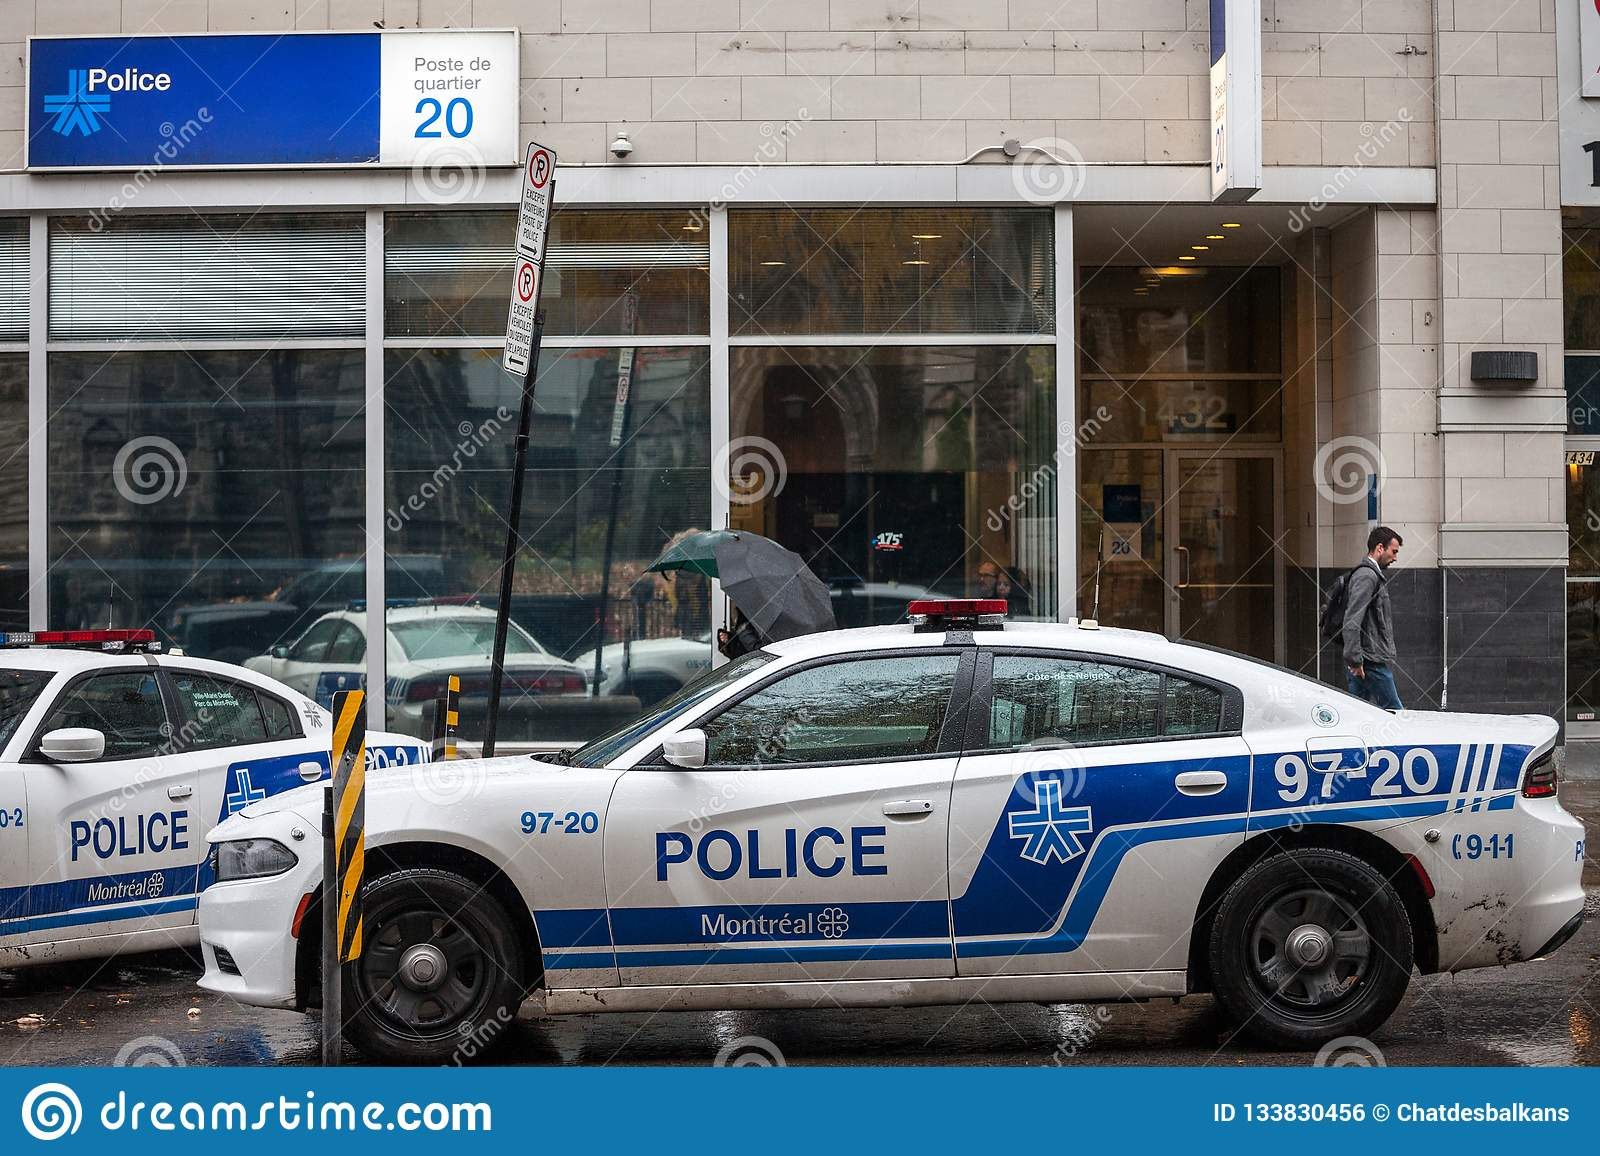 Two Montreal Police Service SPVM cars standing in front of a local police station. The SPVM is the police of Montreal, Quebec